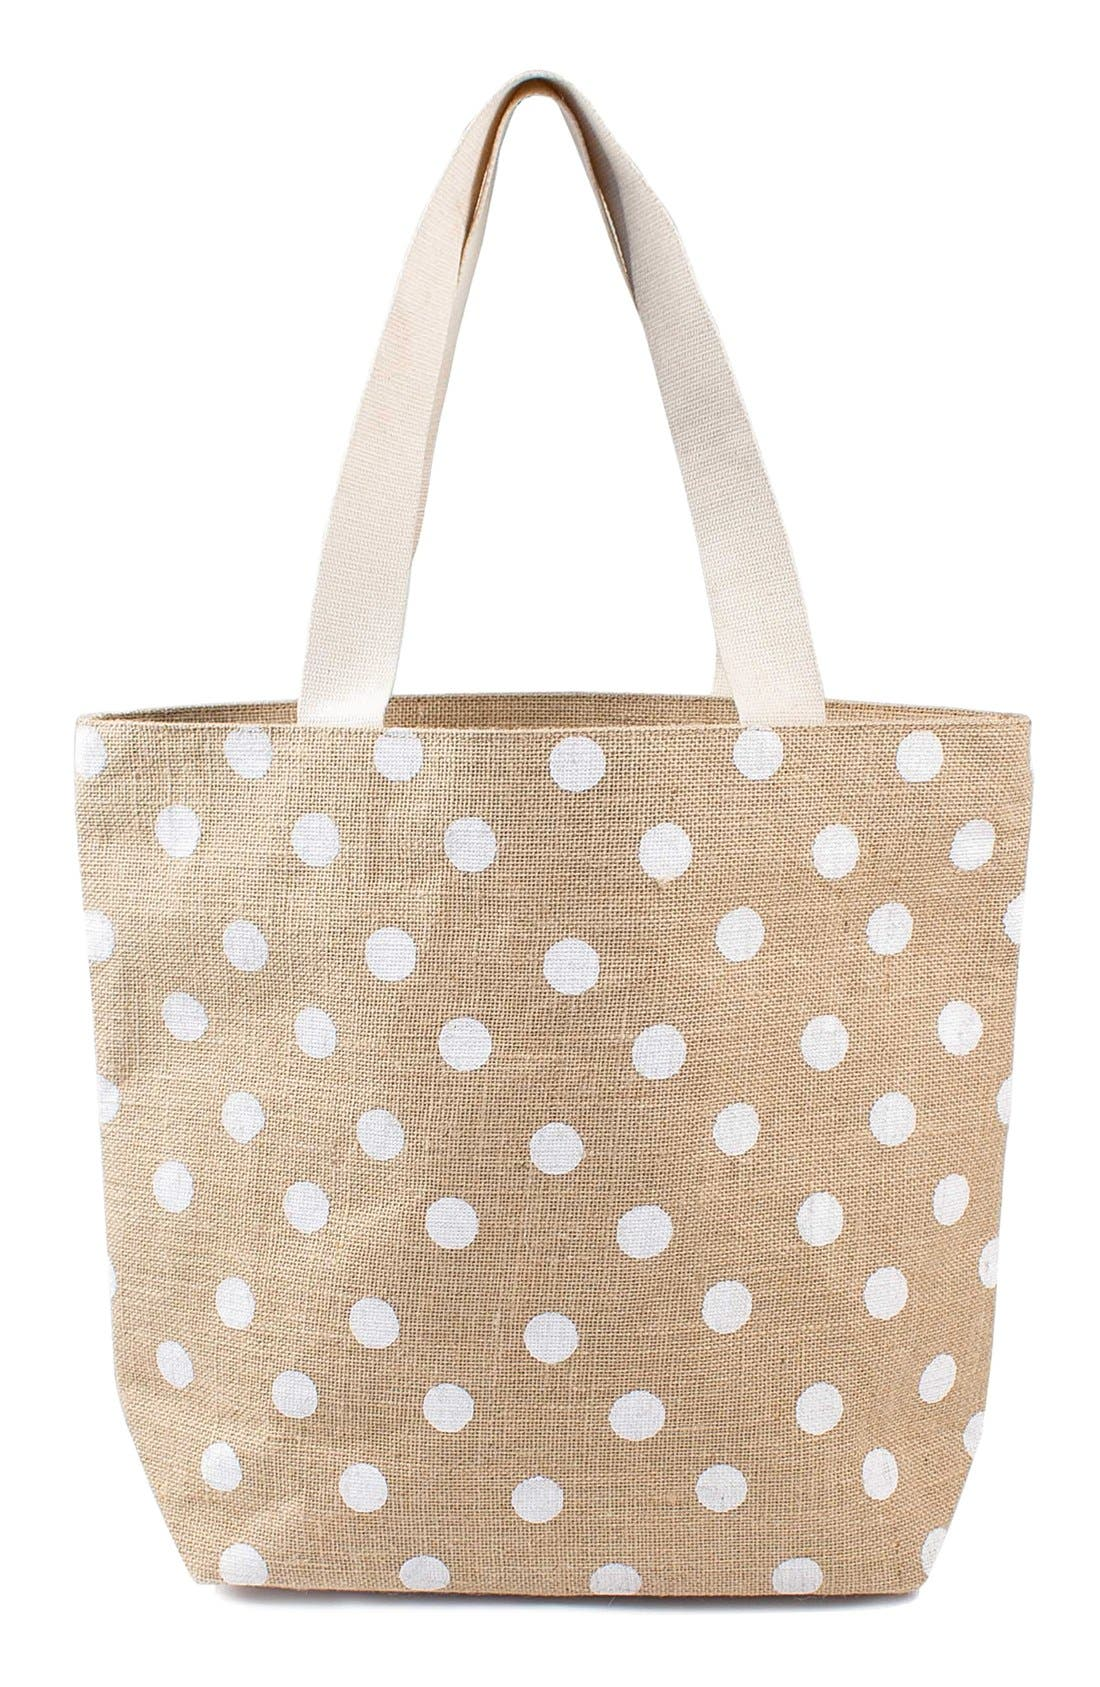 Cathy's Concepts Monogram Polka Dot Jute Tote